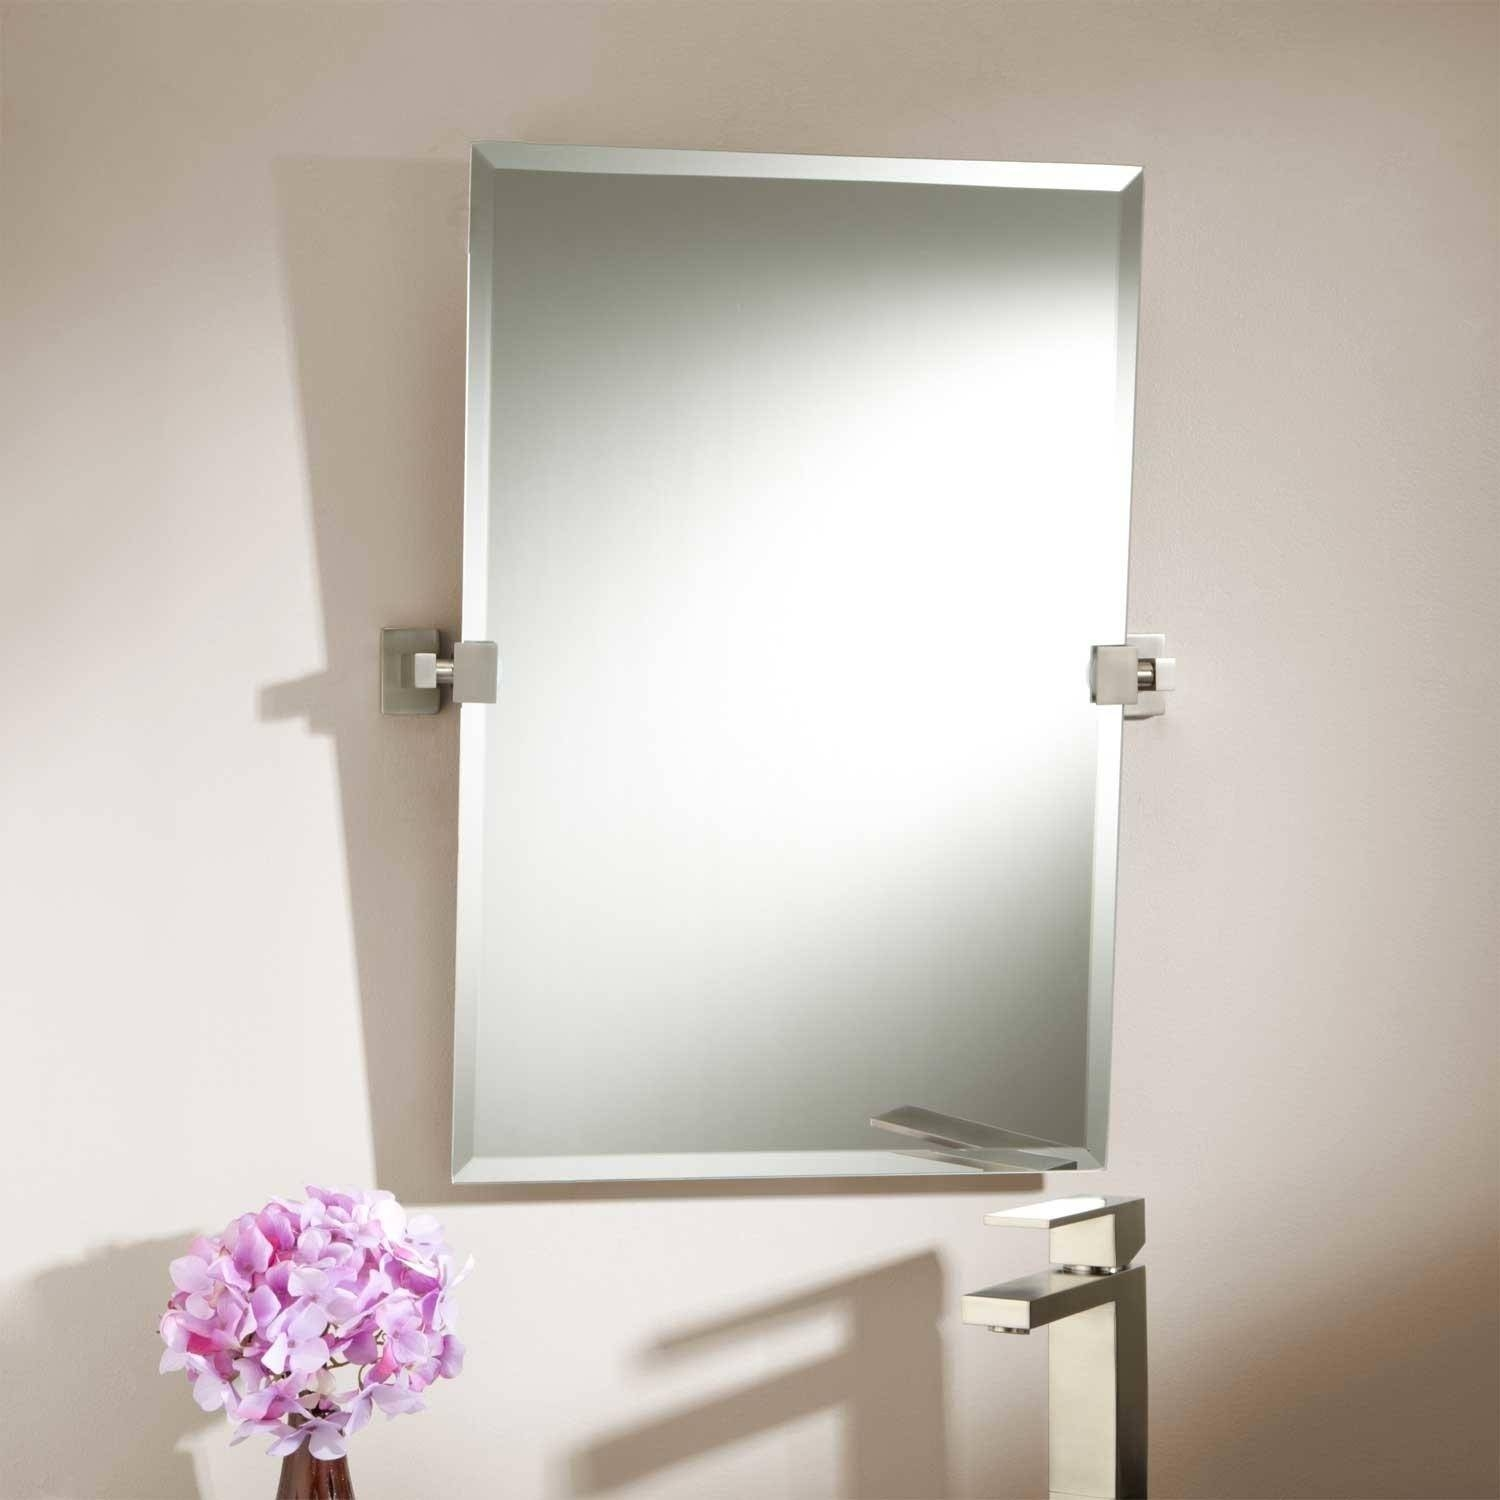 Bathroom Cabinets : Unframed Mirrors Black Wall Mirror Large intended for Unframed Wall Mirrors (Image 2 of 15)